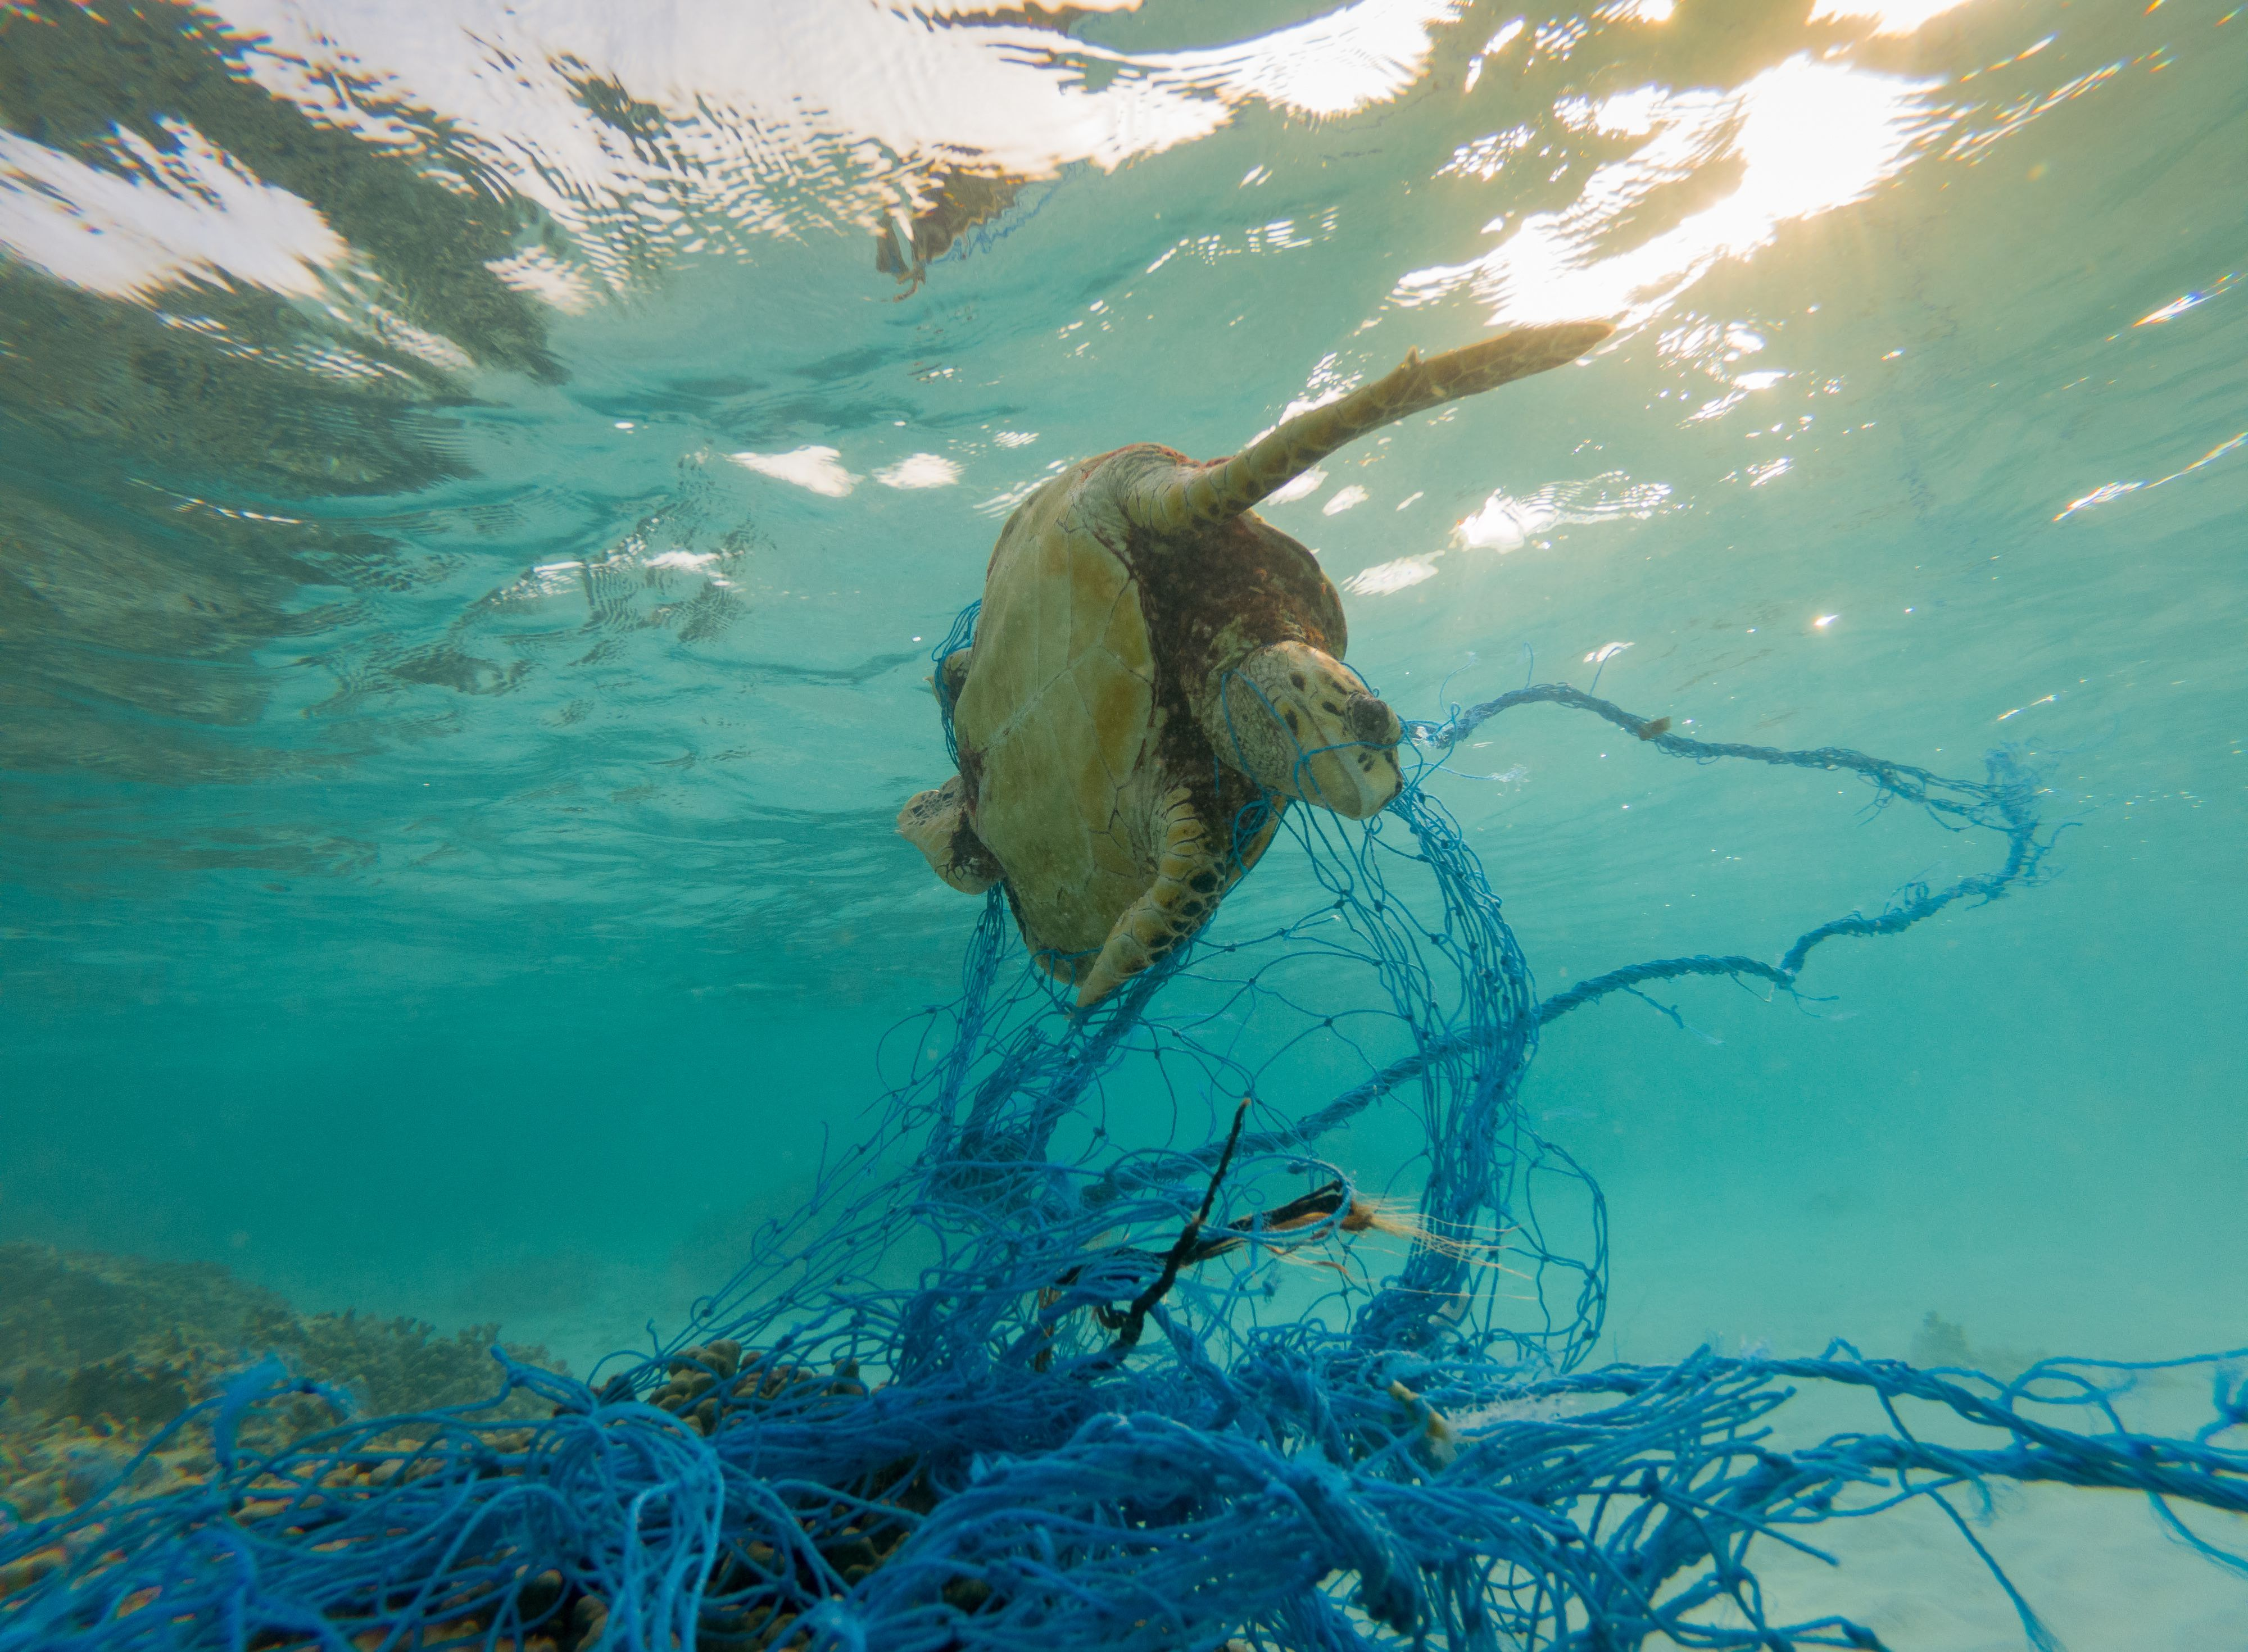 An estimated 640,000 tonnes of fishing gear are dumped in the ocean each year, polluting the sea and fatally trapping marine life.